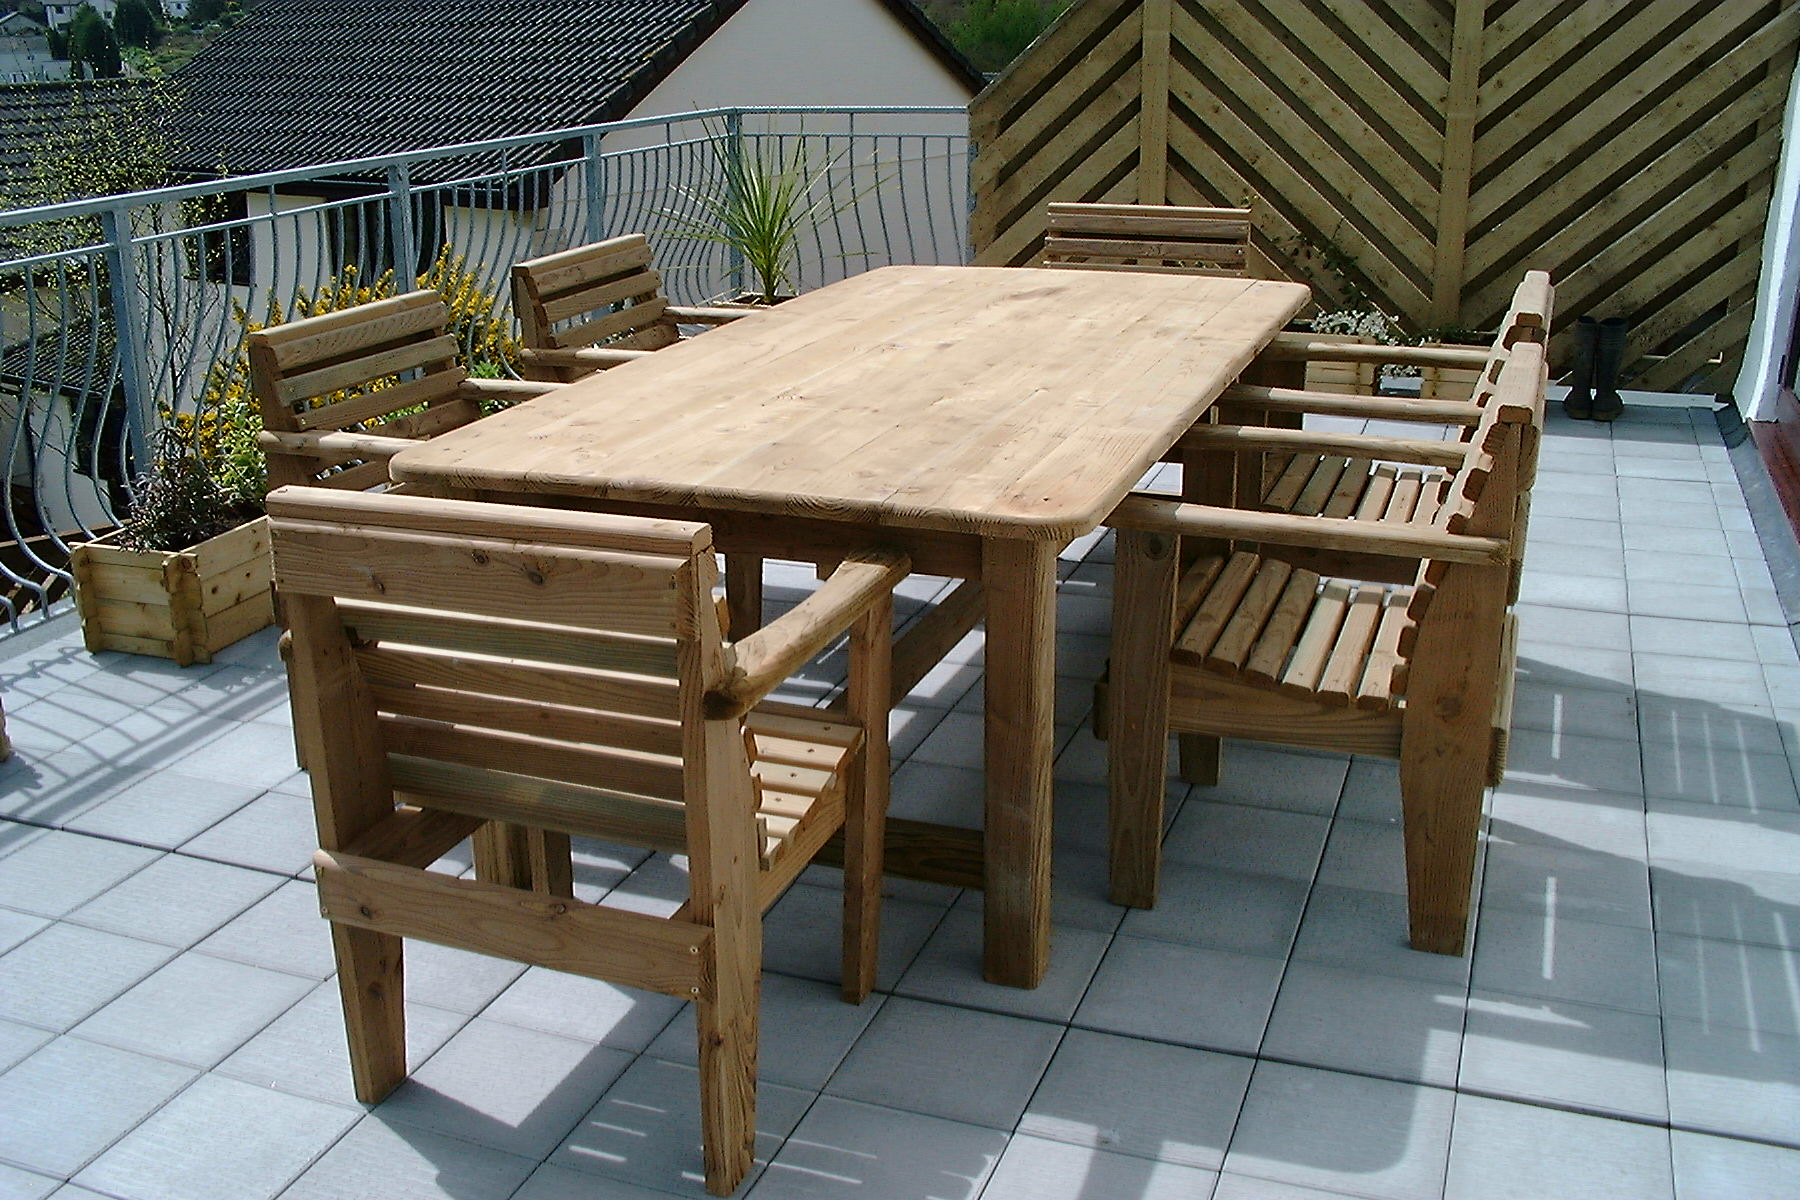 ... X4 Deck Furniture Plans http://www.pic2fly.com/2+X4+Garden+Chairs